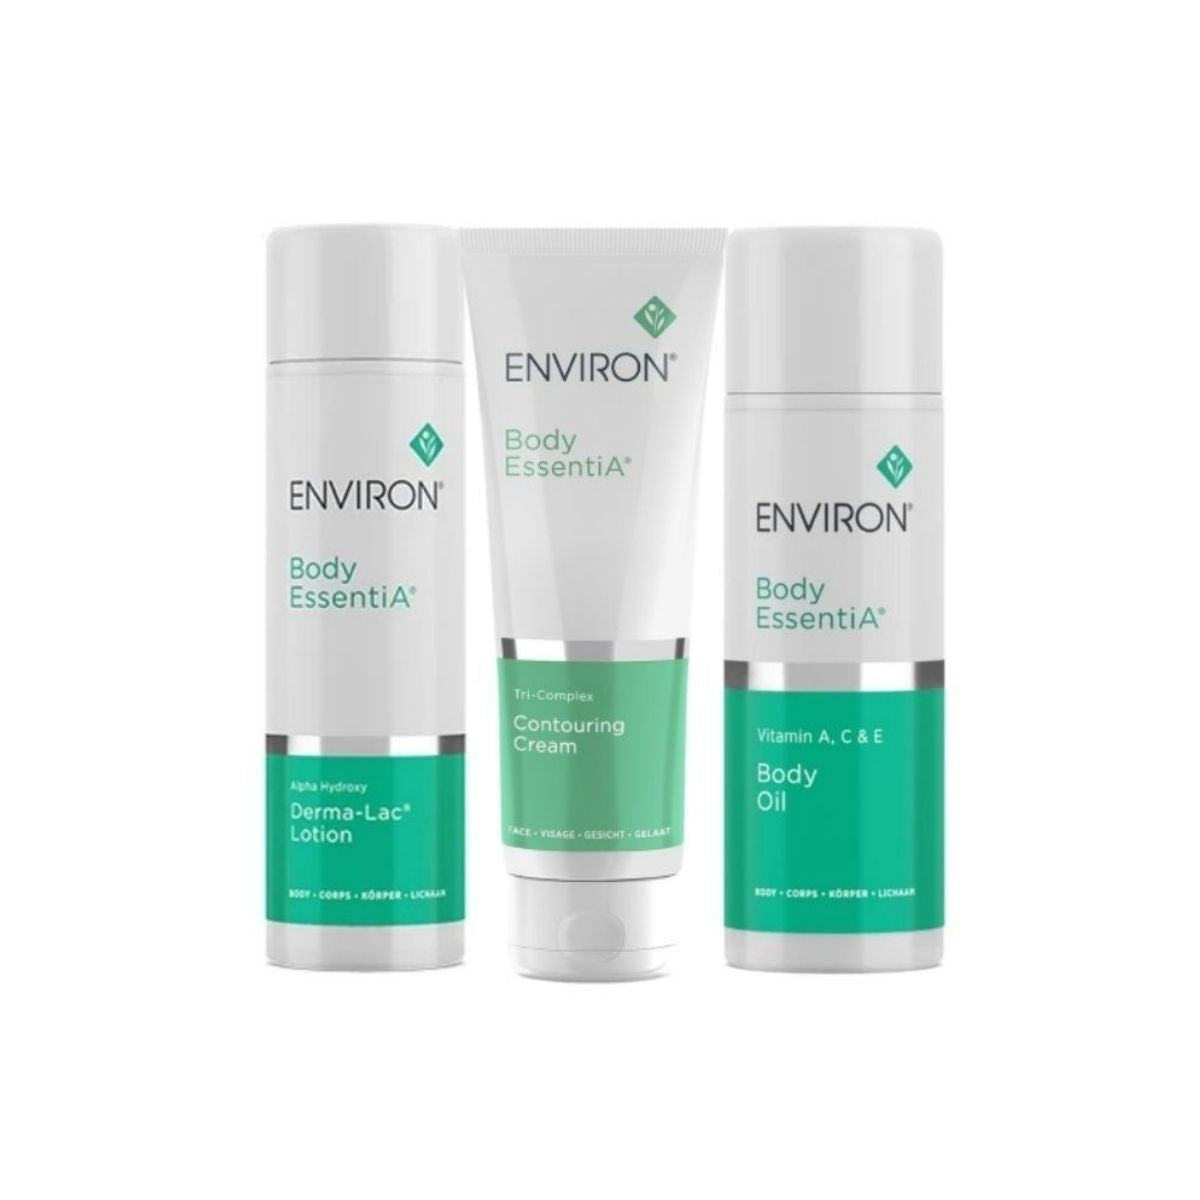 Environ Body Essentials Trio Bundle